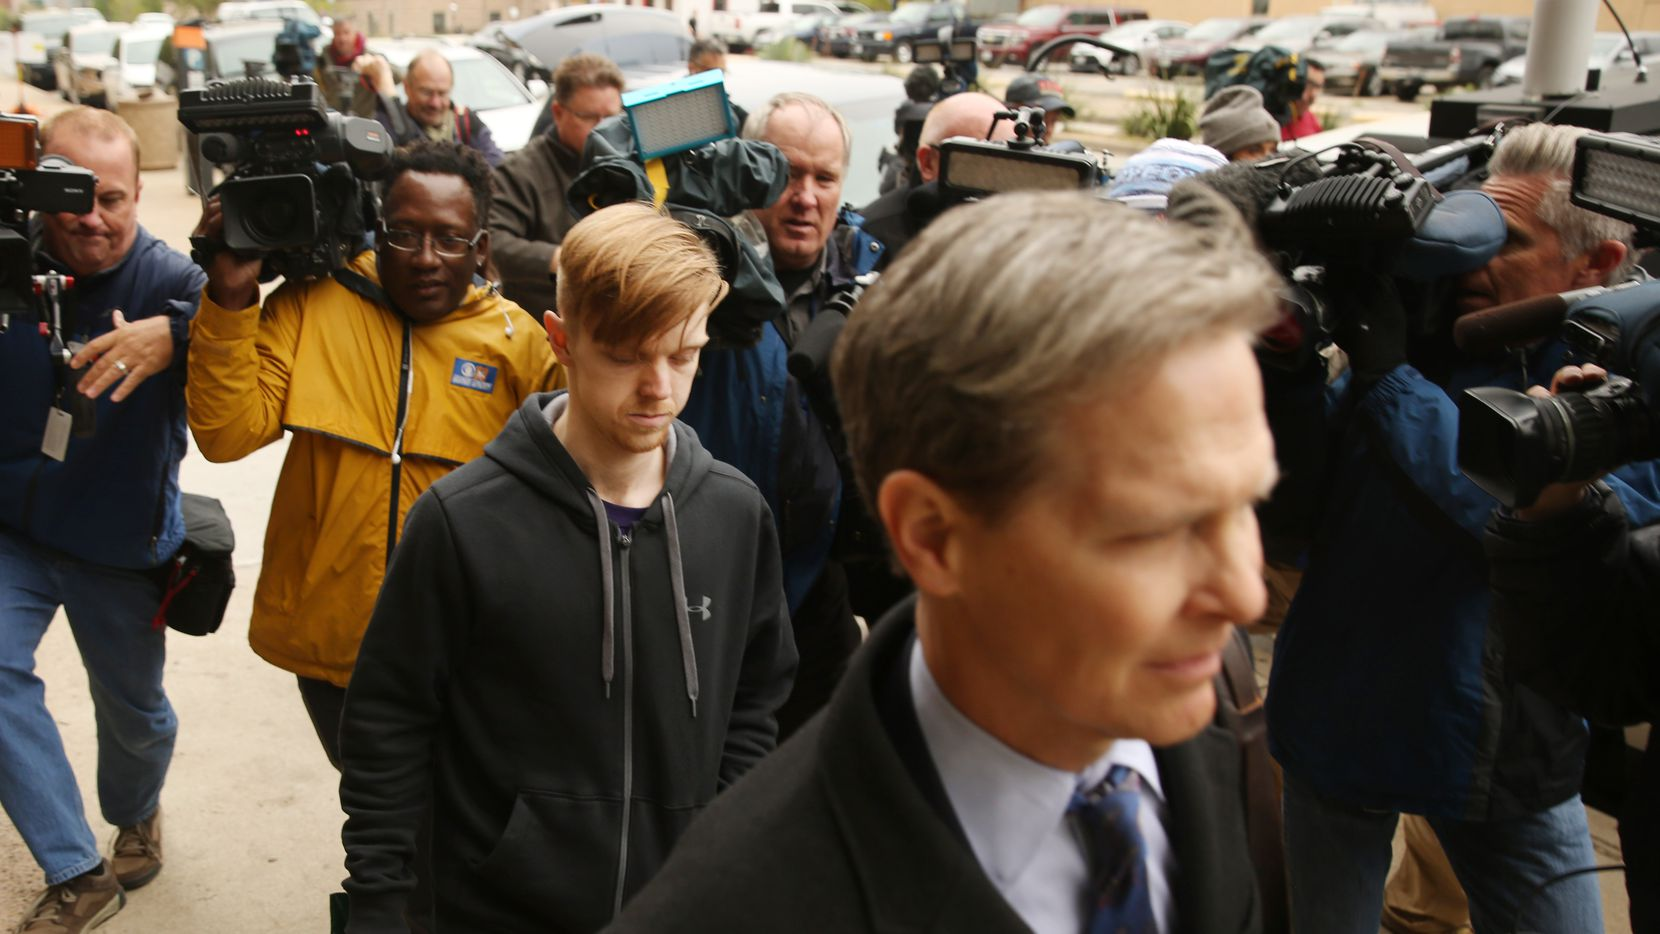 Ethan Couch was released from the Tarrant County jail April 2, 2018.